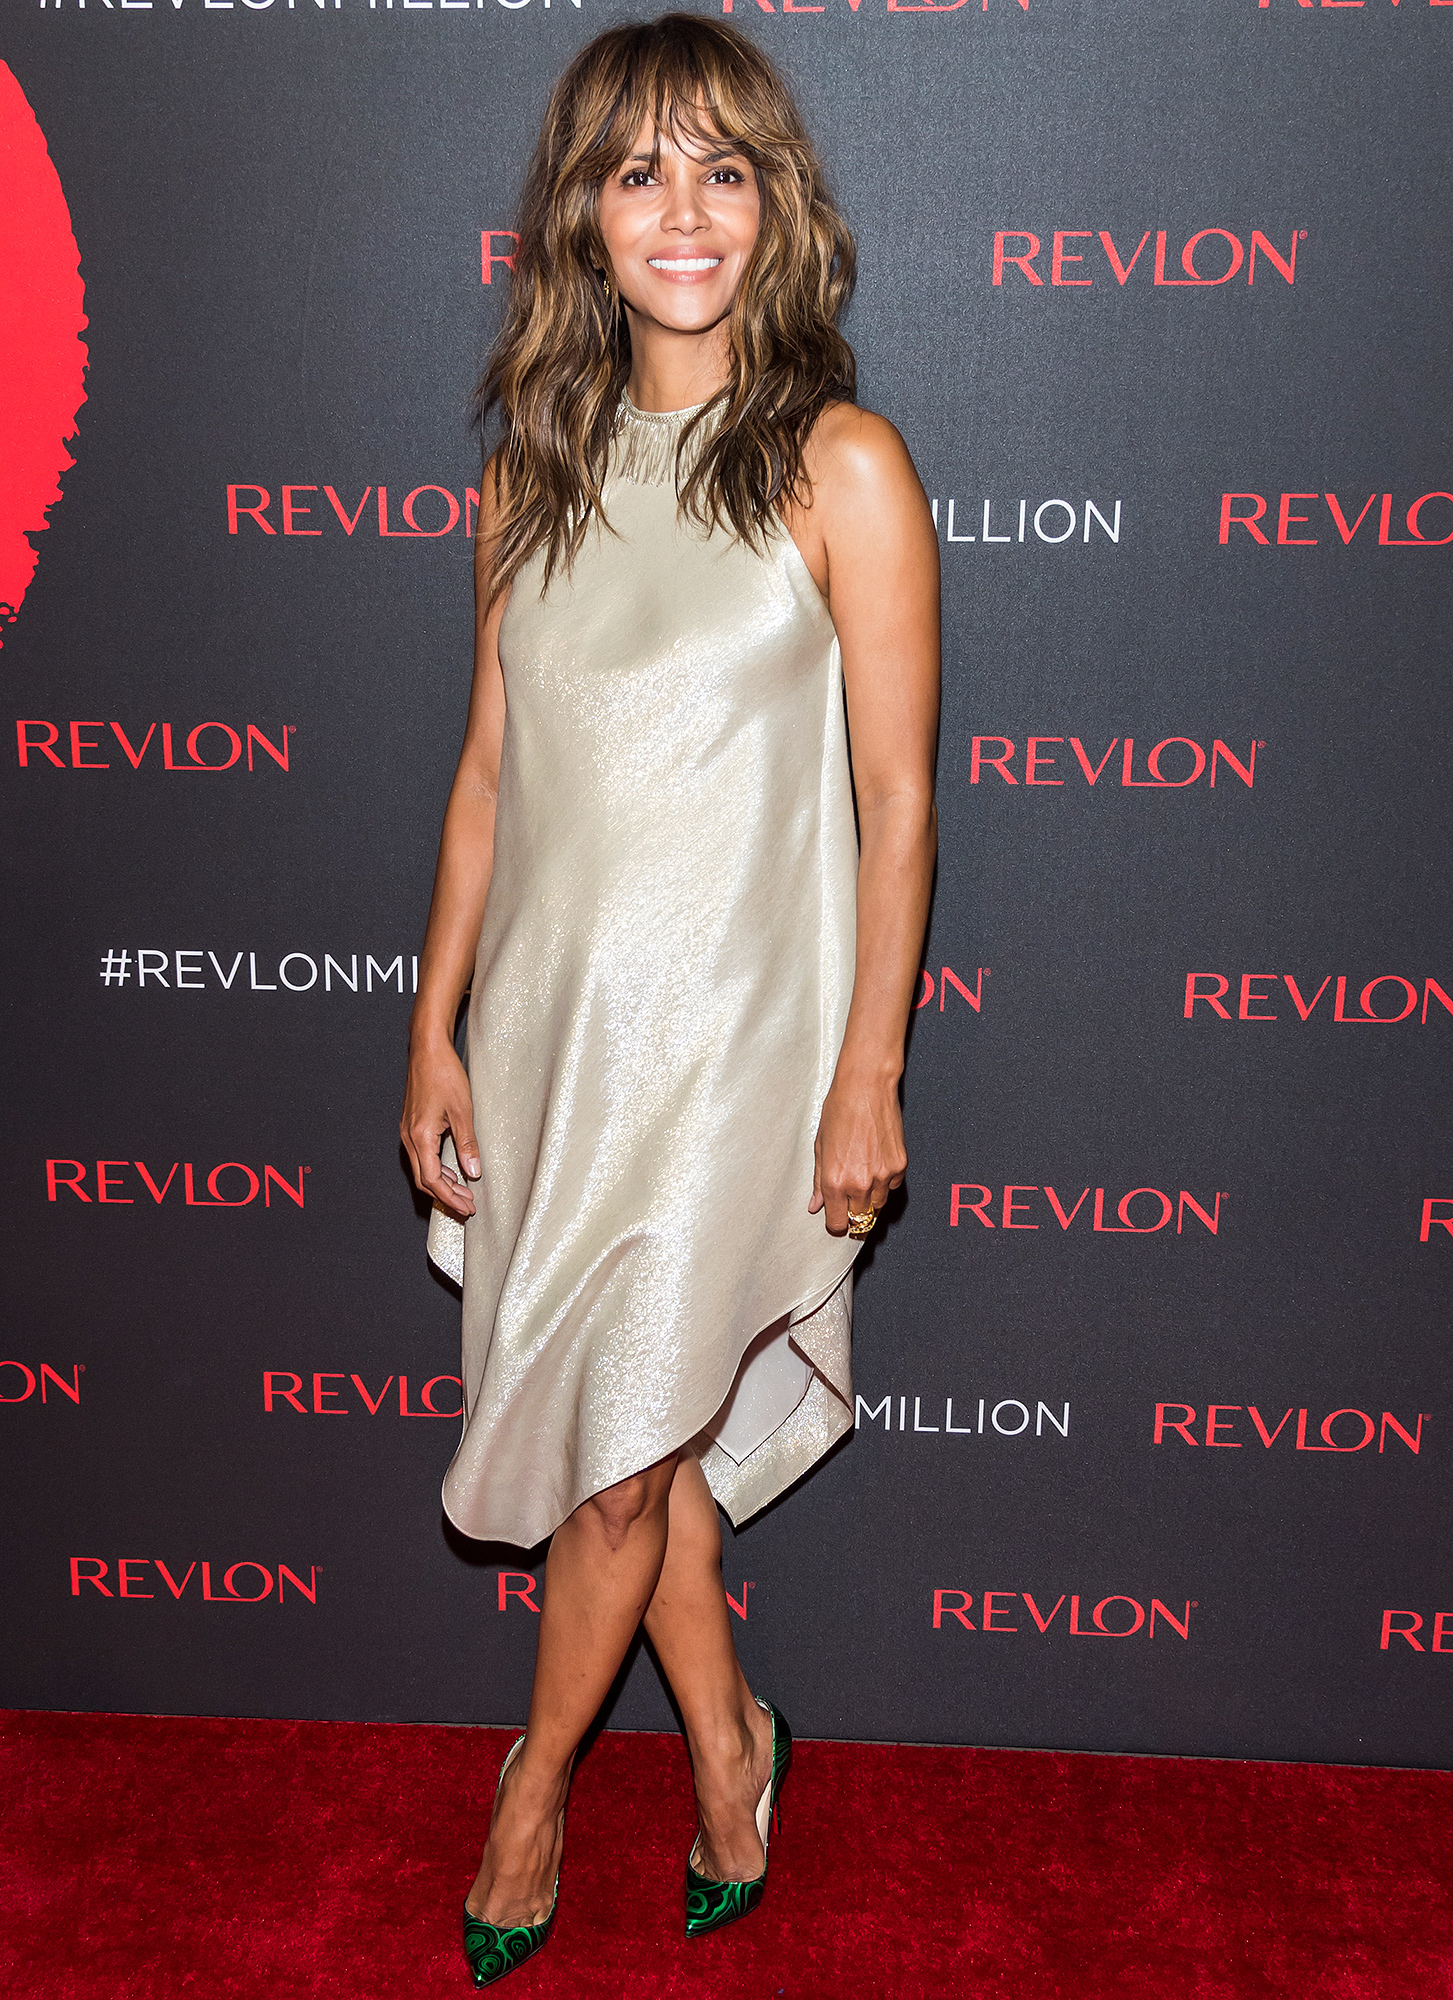 Revlon's 2nd Annual Love Is On Million Dollar Challenge Finale Party